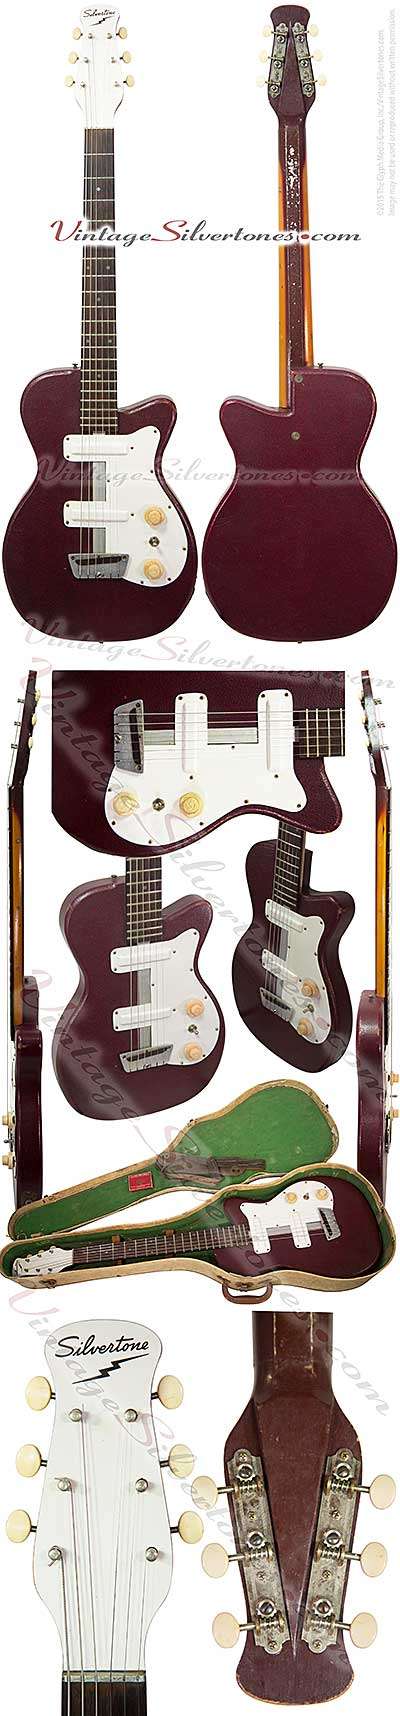 Silvertone 1377 Danelectro, made in NJ, early, maroon artificial leather, 2 pickups, single cutaway 1955